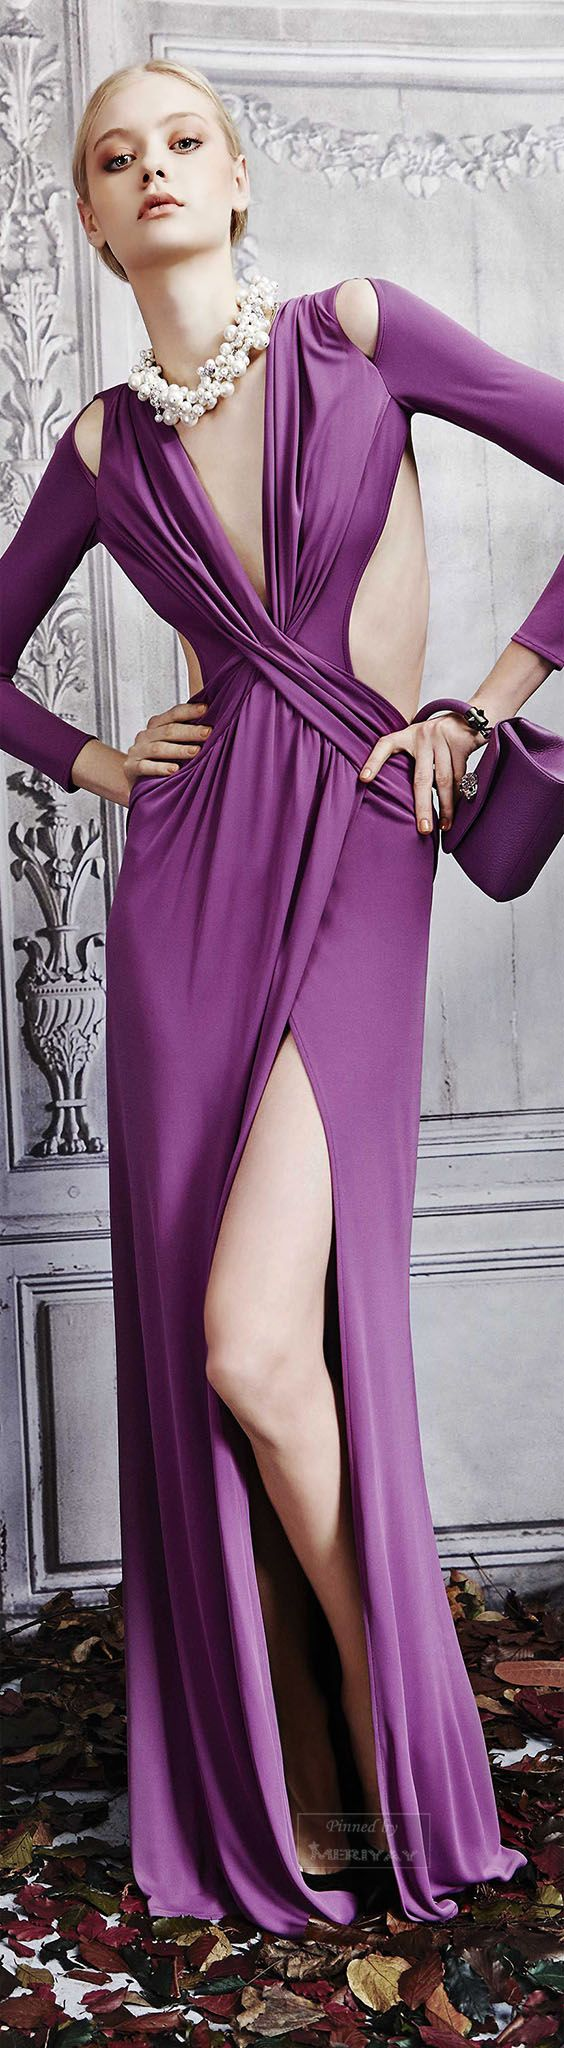 best writing inspiration queenus gambit fashion sw images on